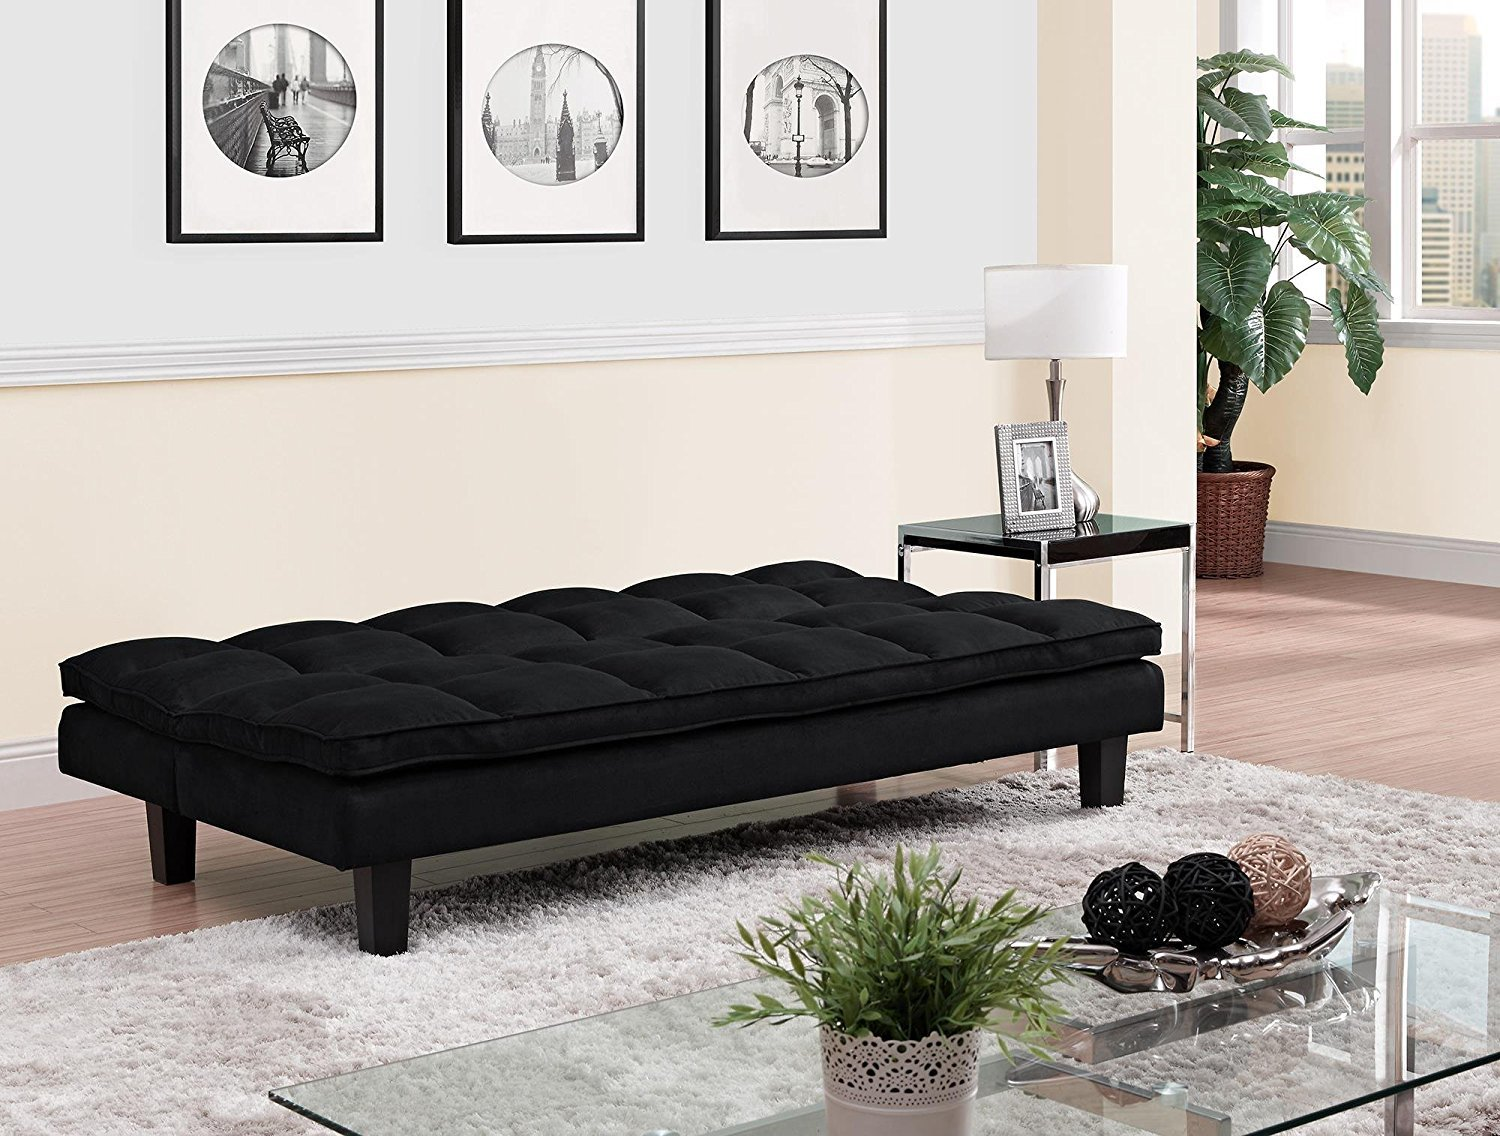 Dhp Allegra Pillow Top Futon Black And 50 Similar Items 81mvbzwmj9l Sl1500